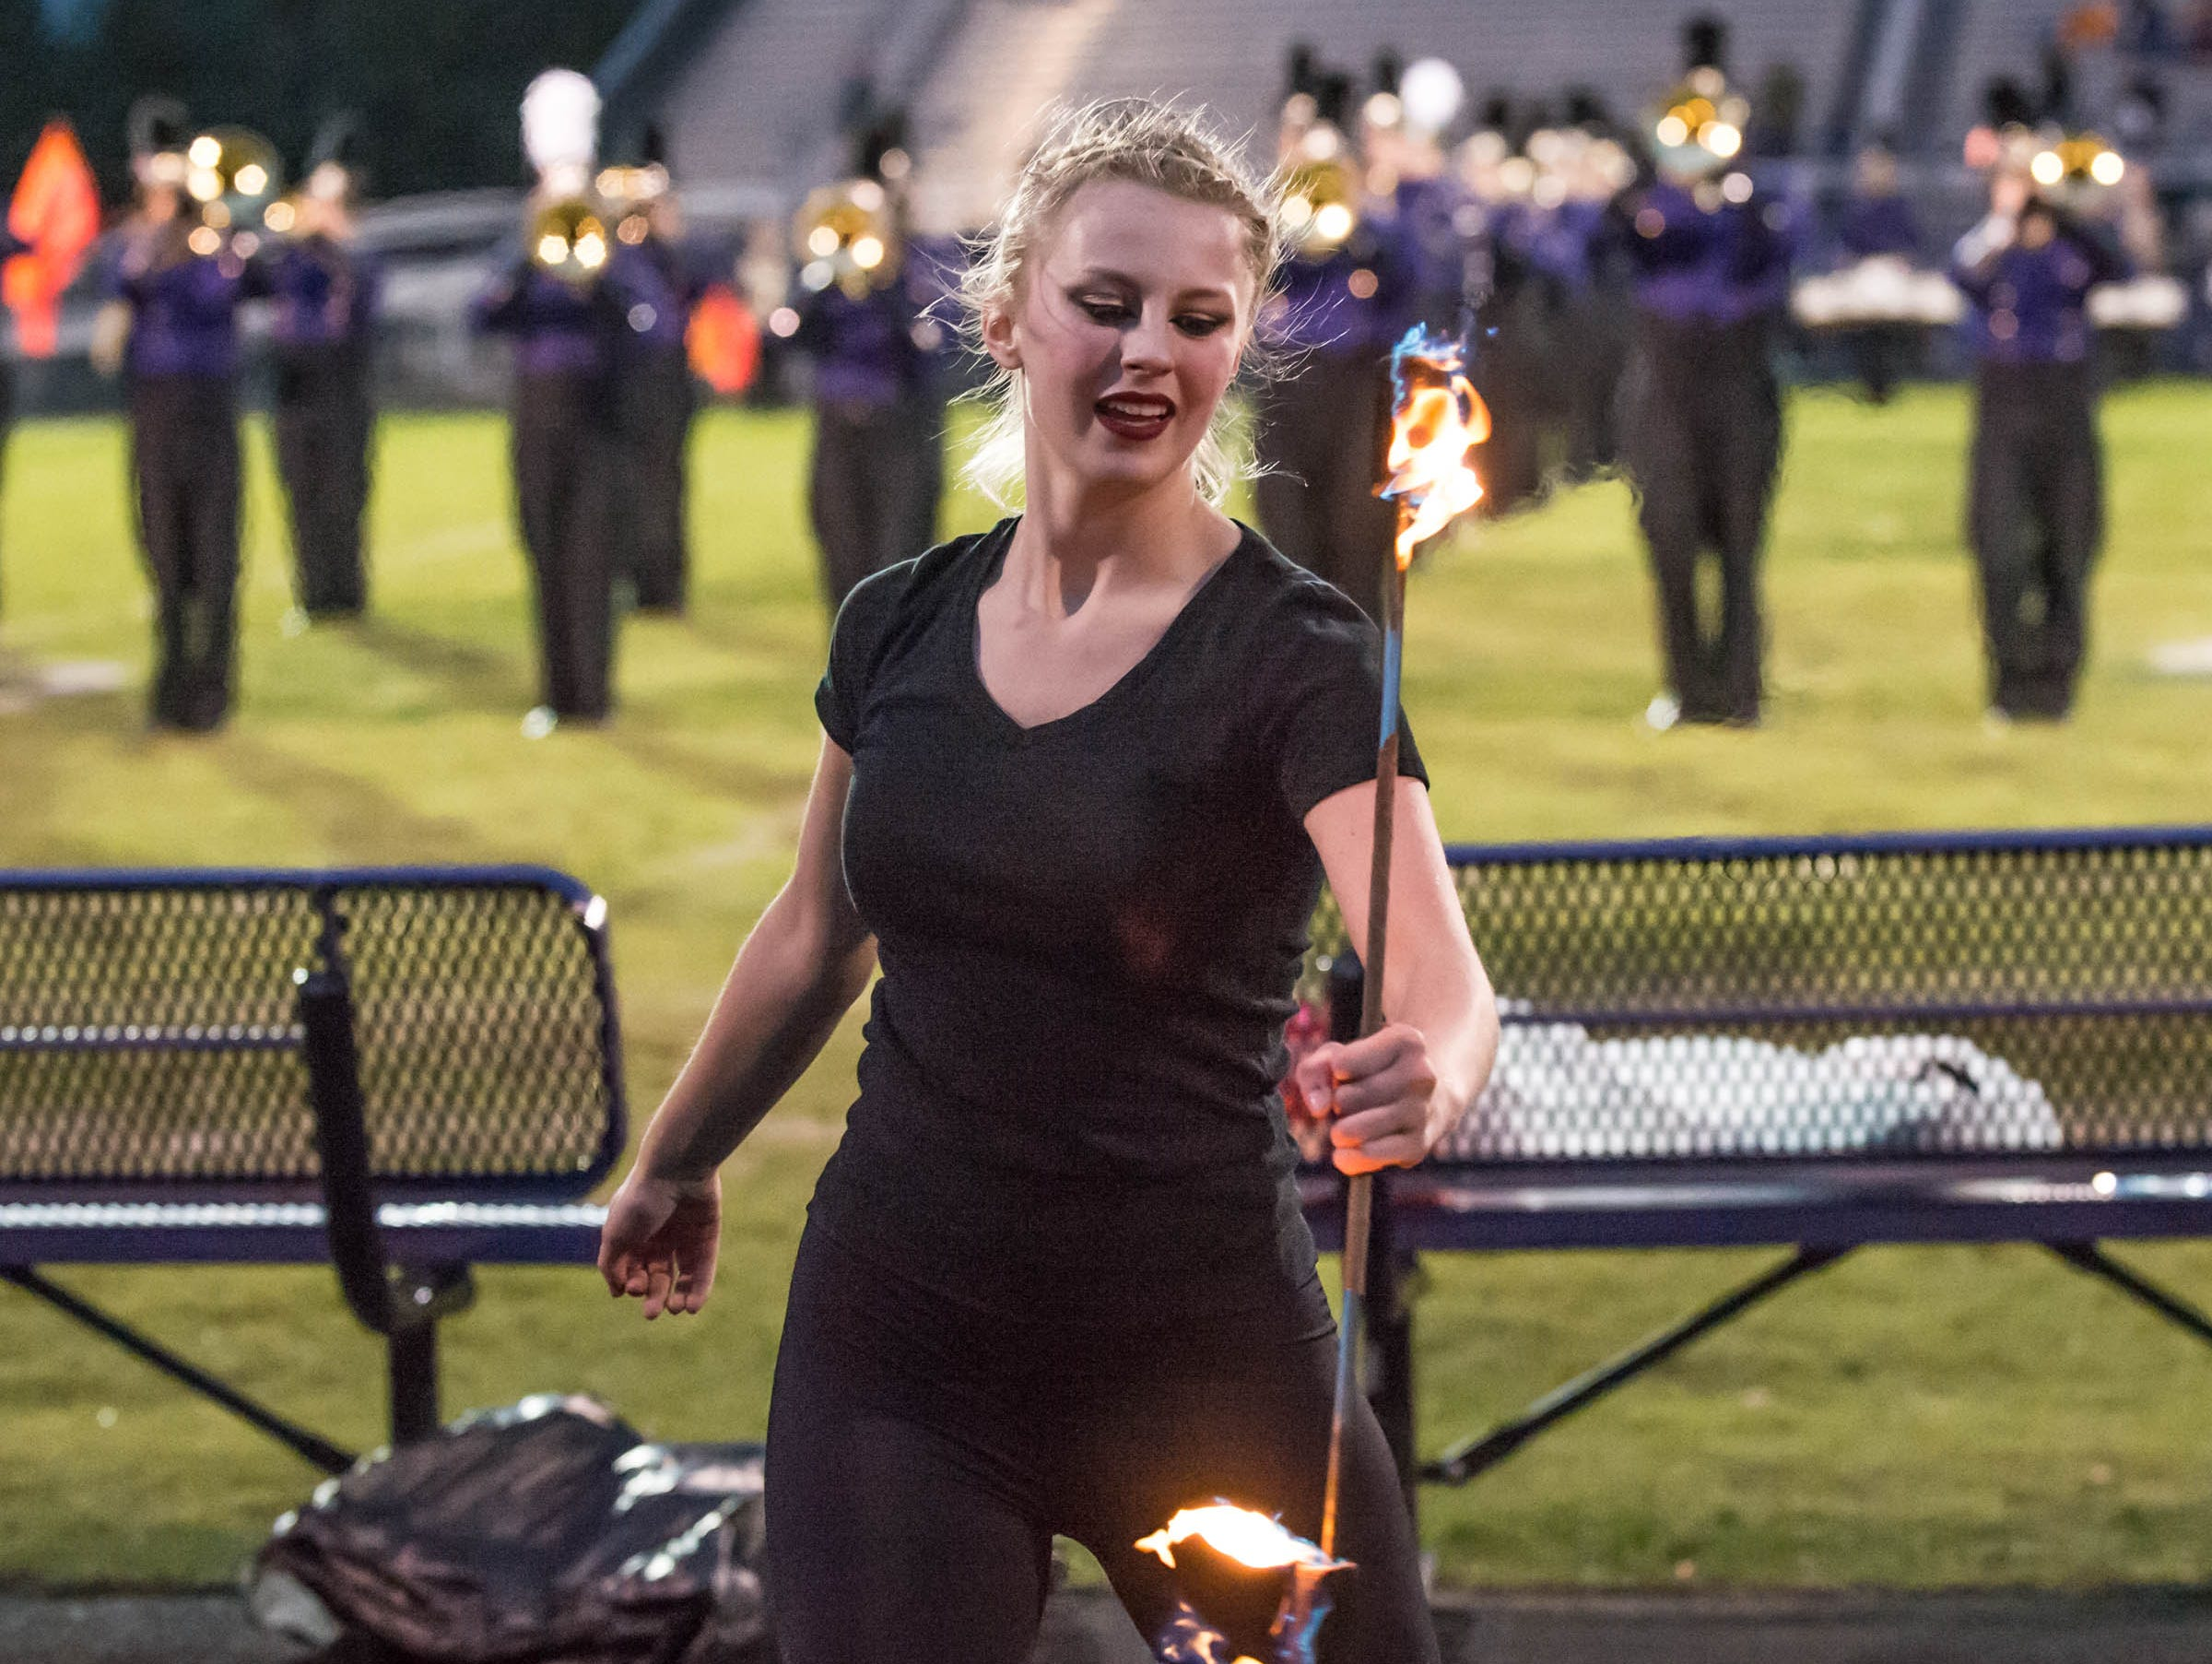 Maddie Etheridge performs with a flaming baton during the pre-game show at Lakeview Friday evening.